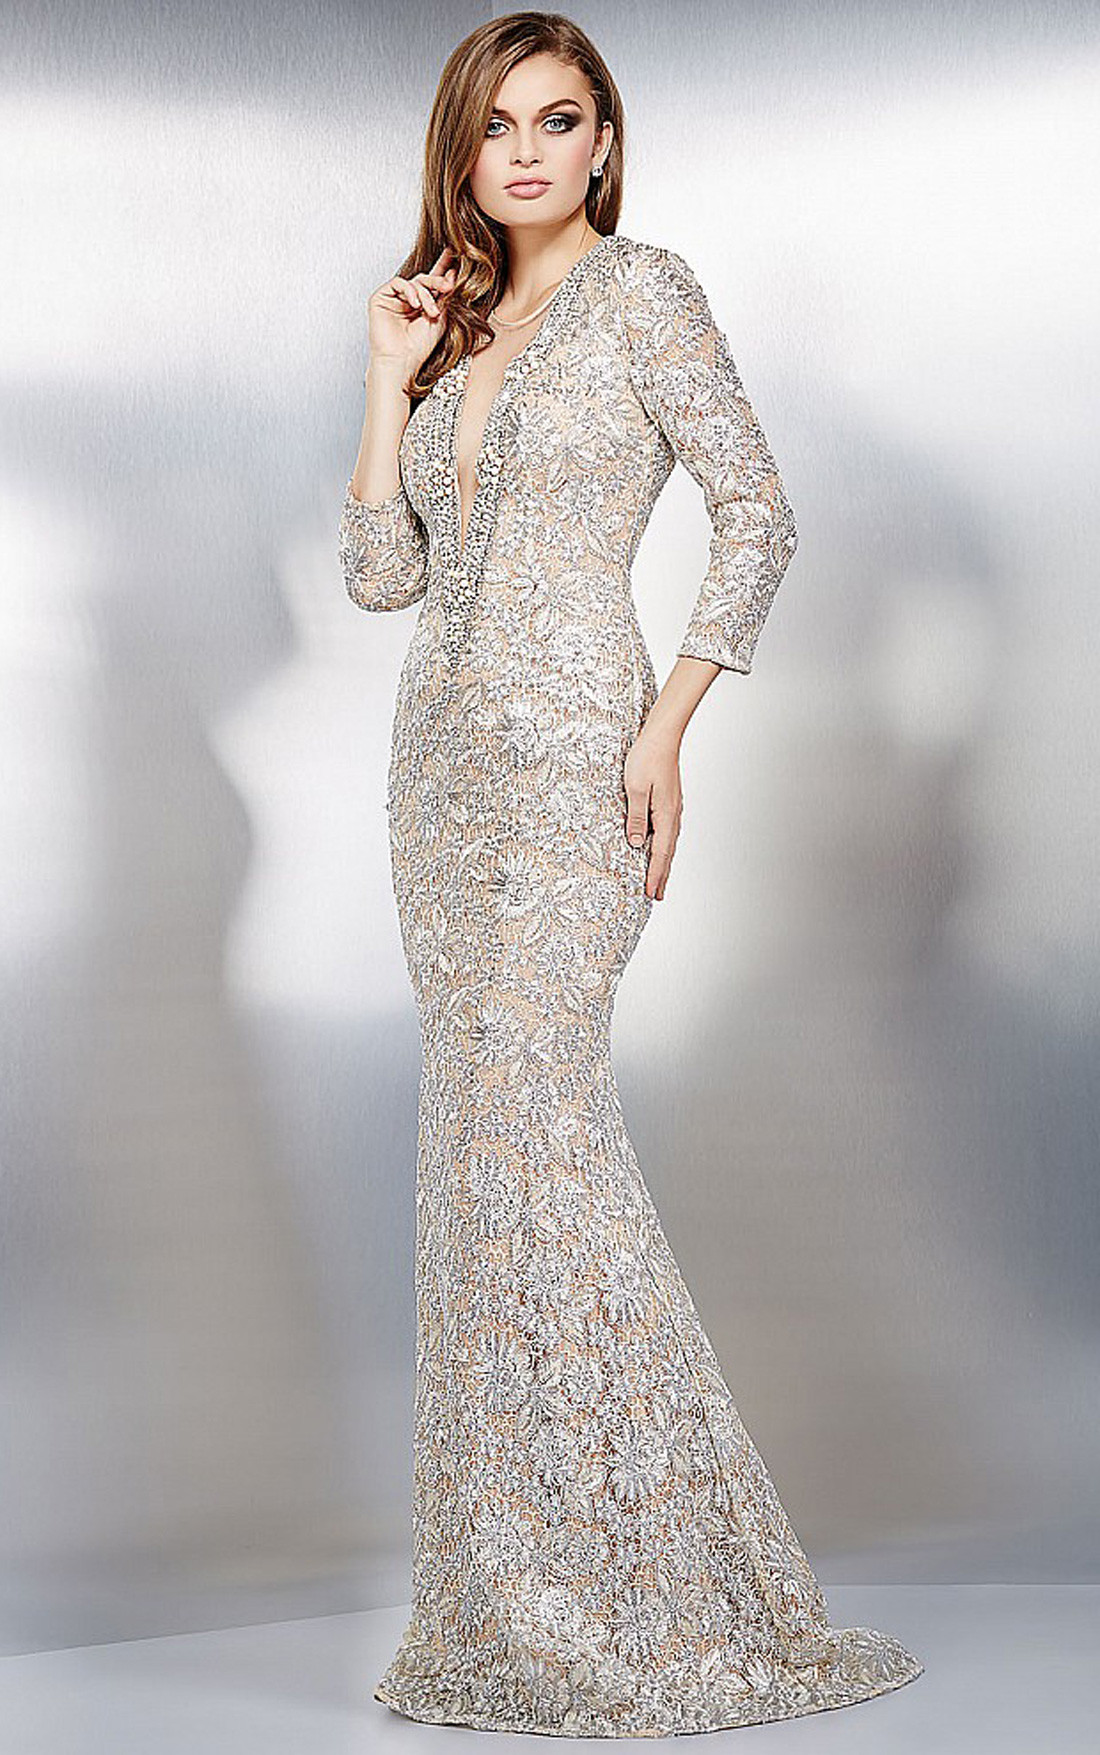 Jovani Dresses Womens Silver And Nude Long Sleeve Lace